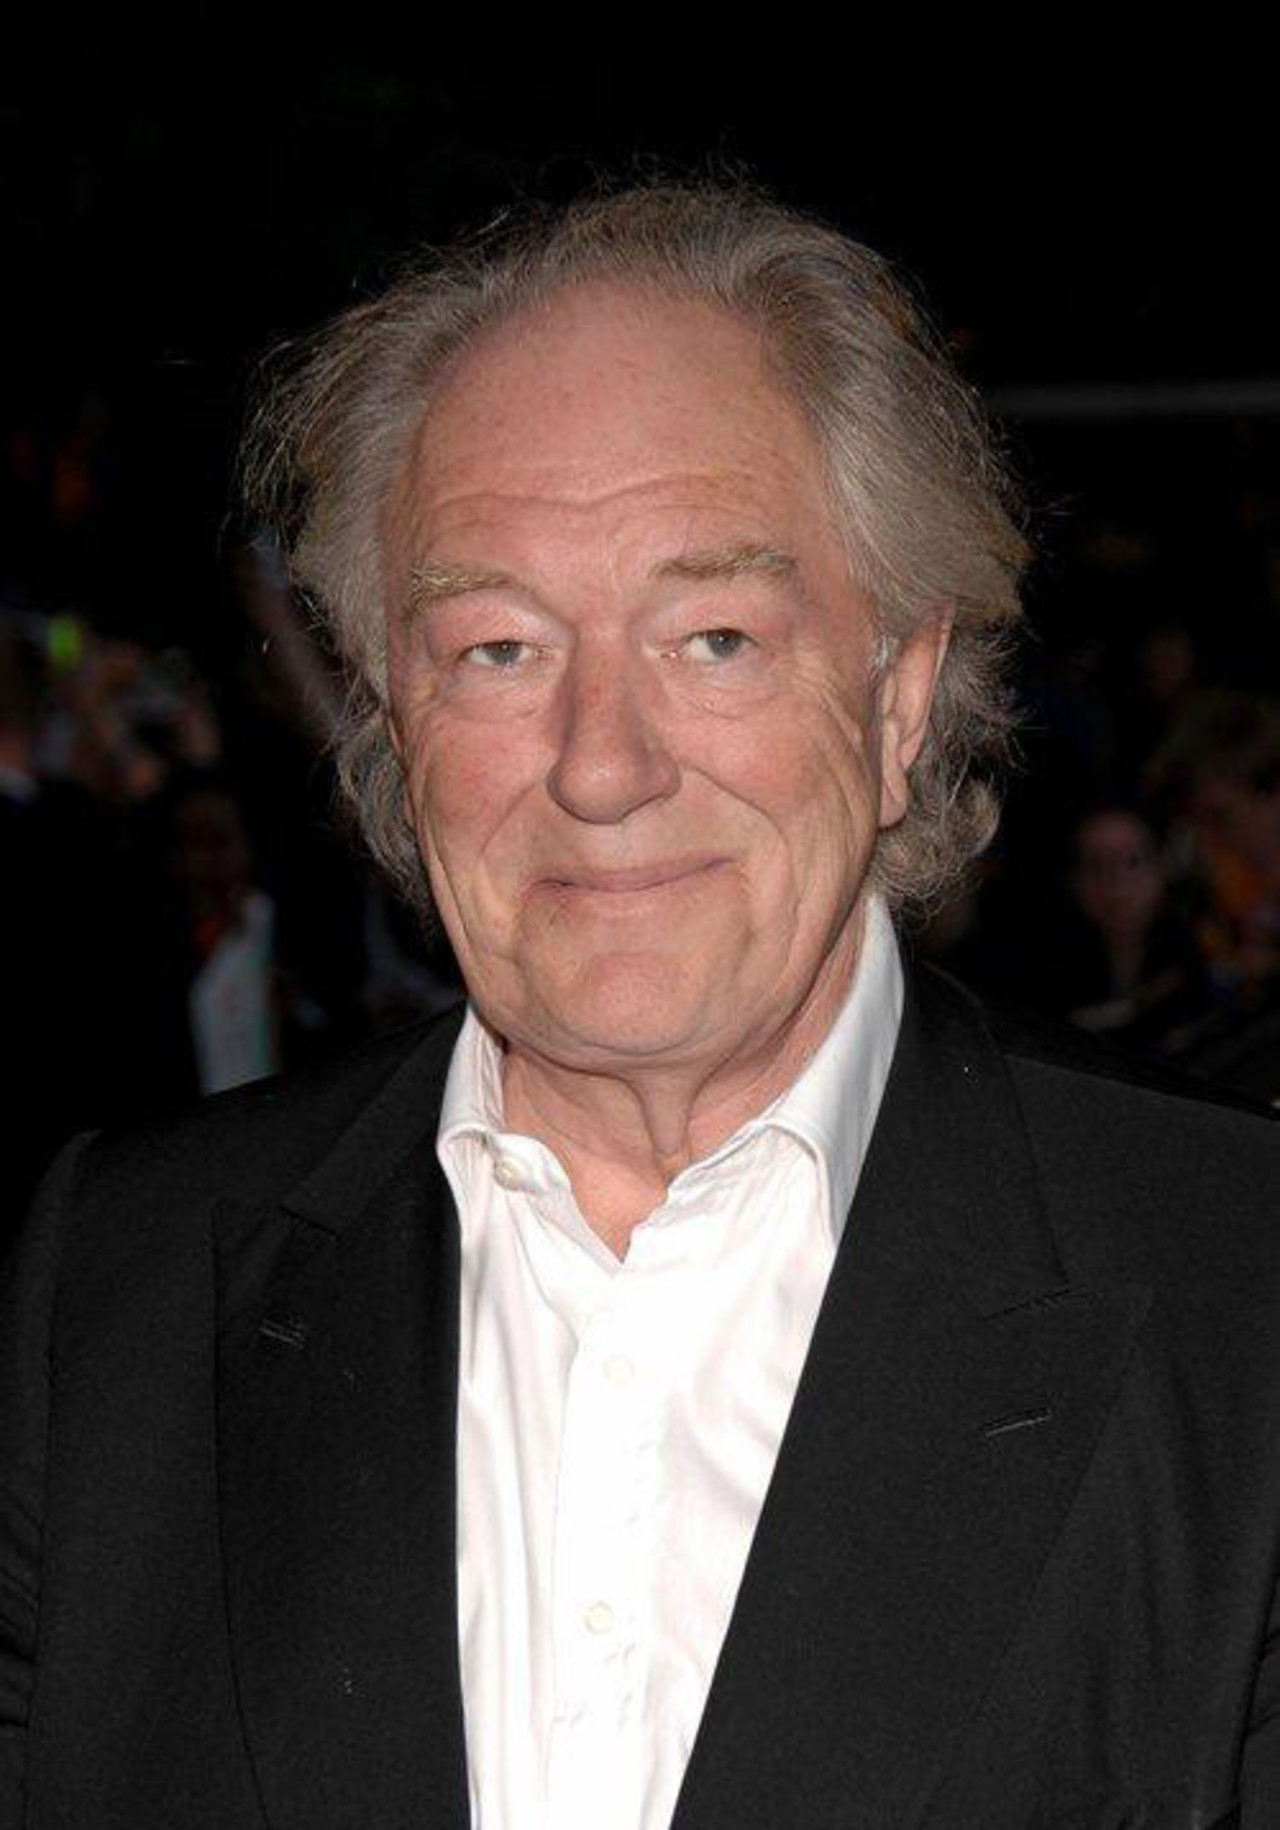 pictures Michael Gambon (born 1940)